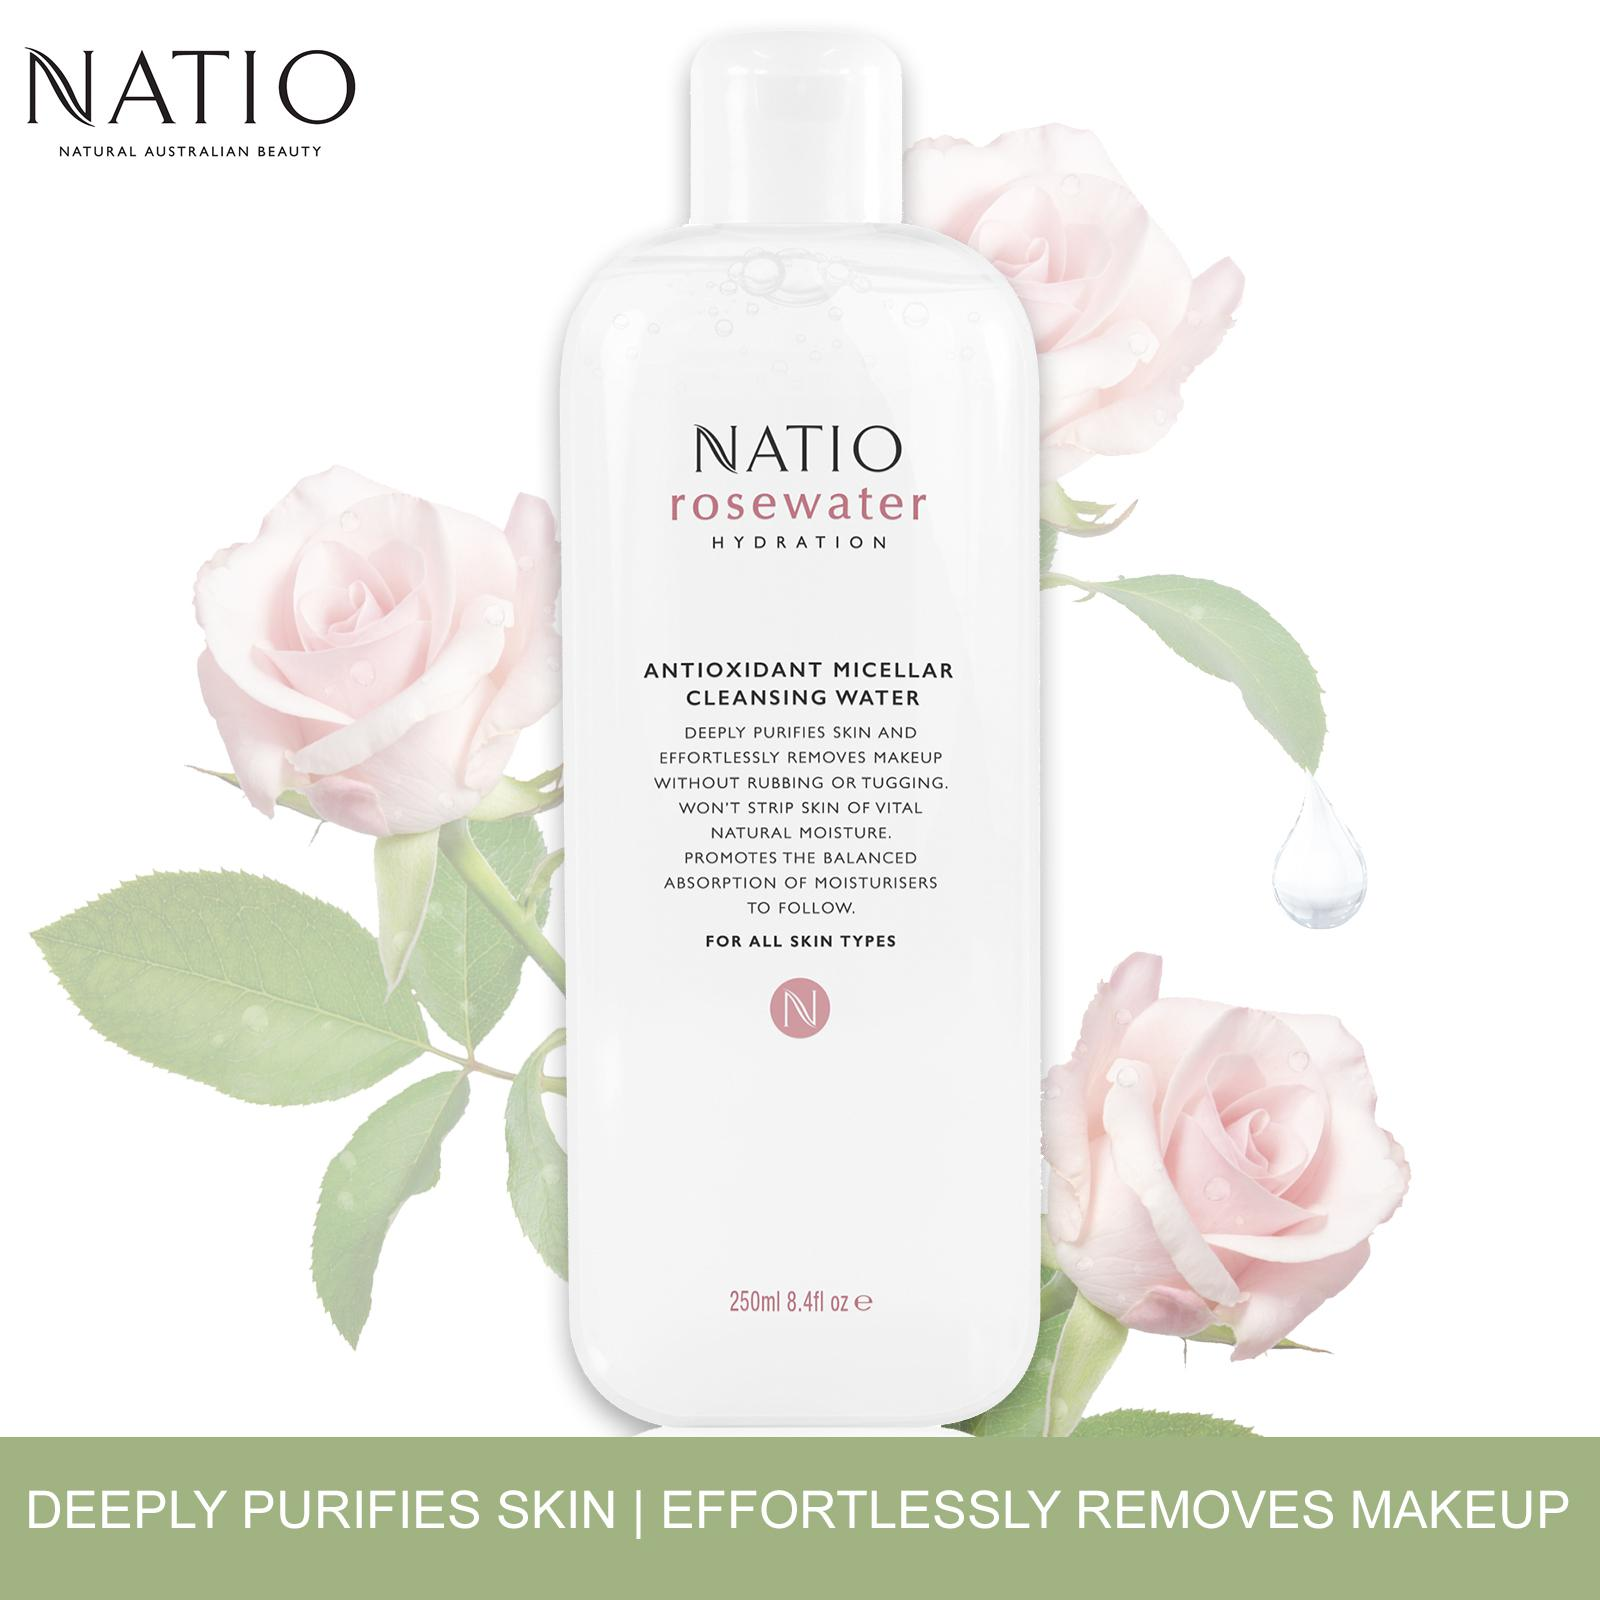 Skin Care Buy At Best Price In Singapore Pureheals Propolis Cleansing Milk 100ml Natio Rosewater Hydration Antioxidant Micellar Water